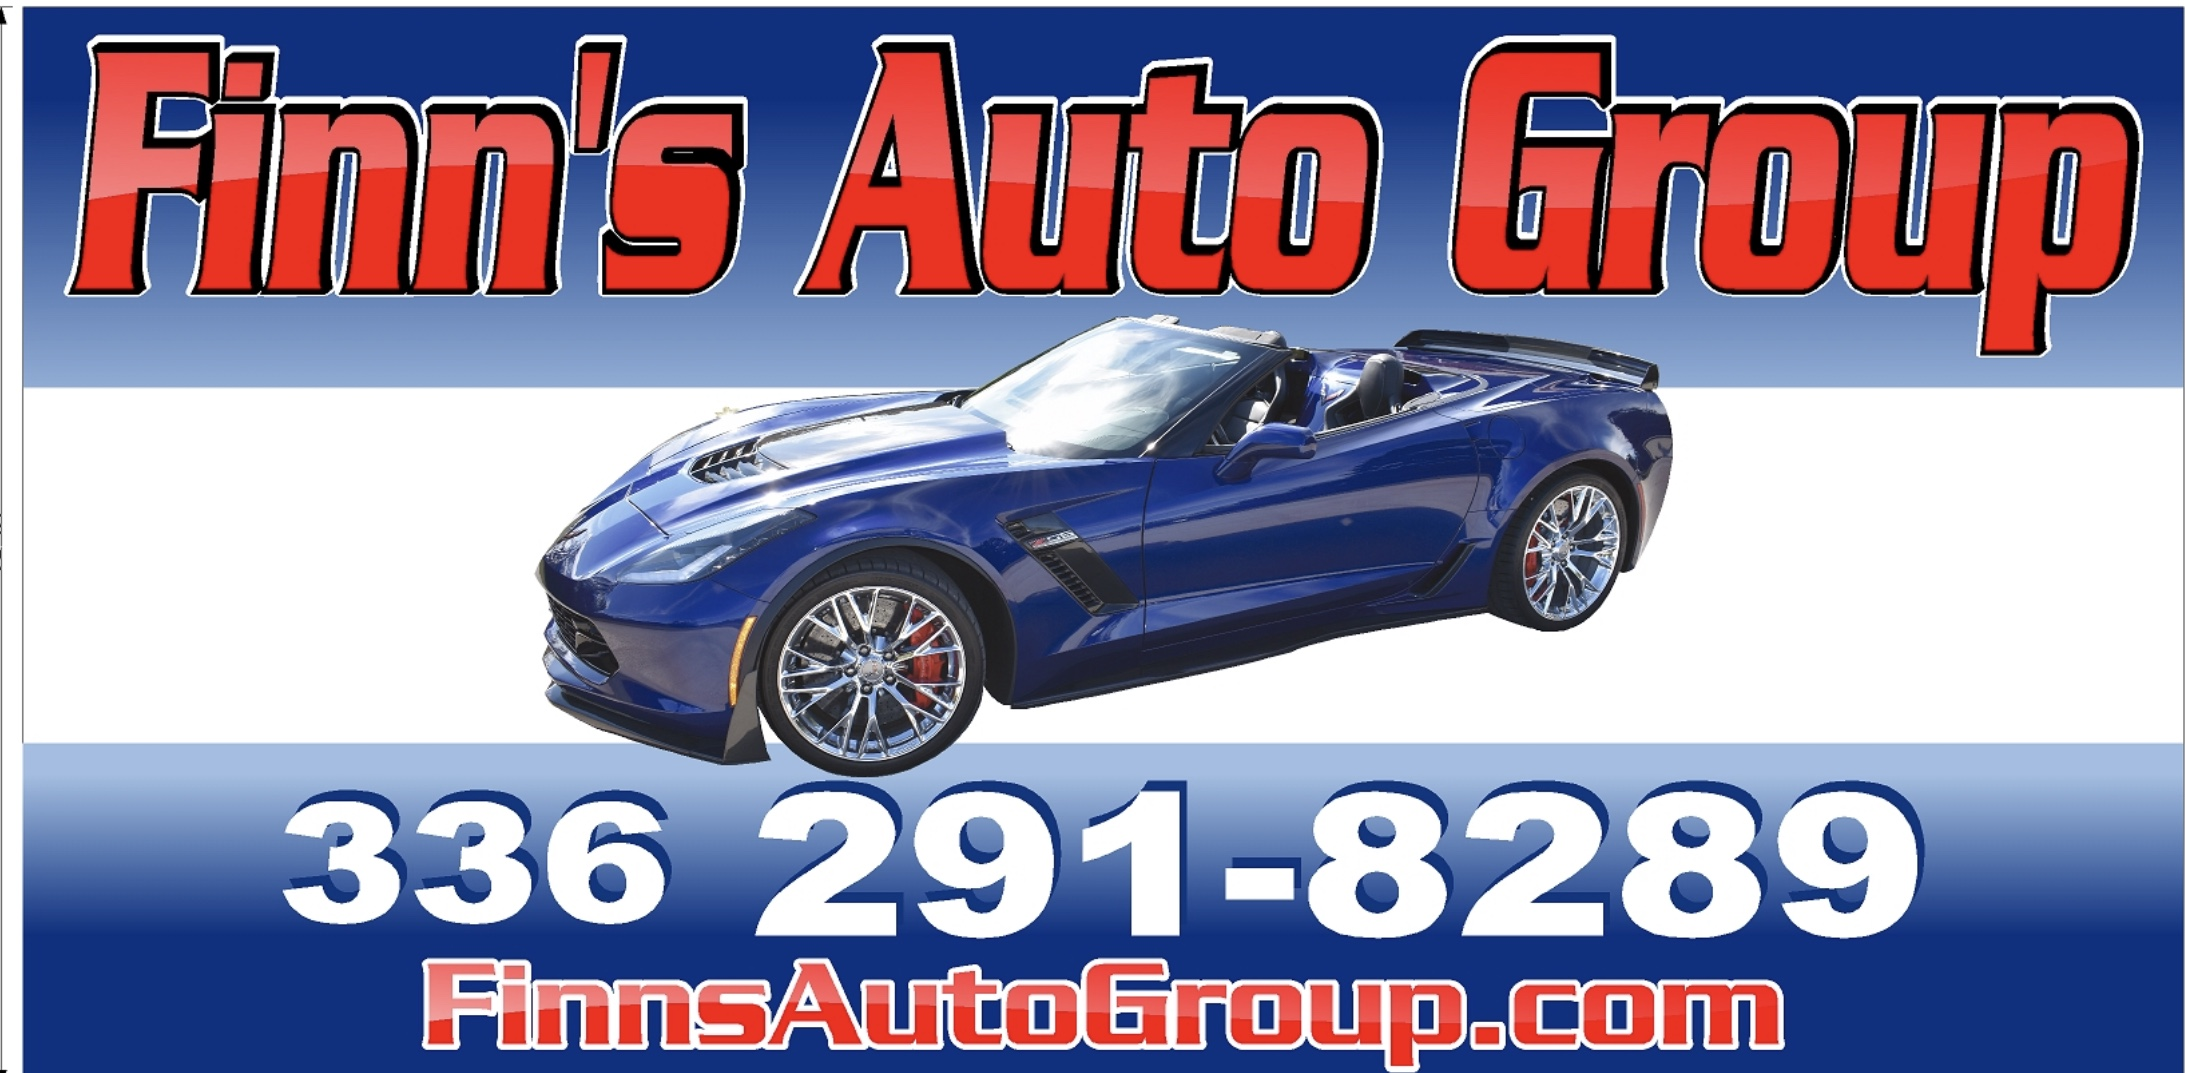 Finns Auto Group In Greensboro NC, Quality Preowned Vehicles!